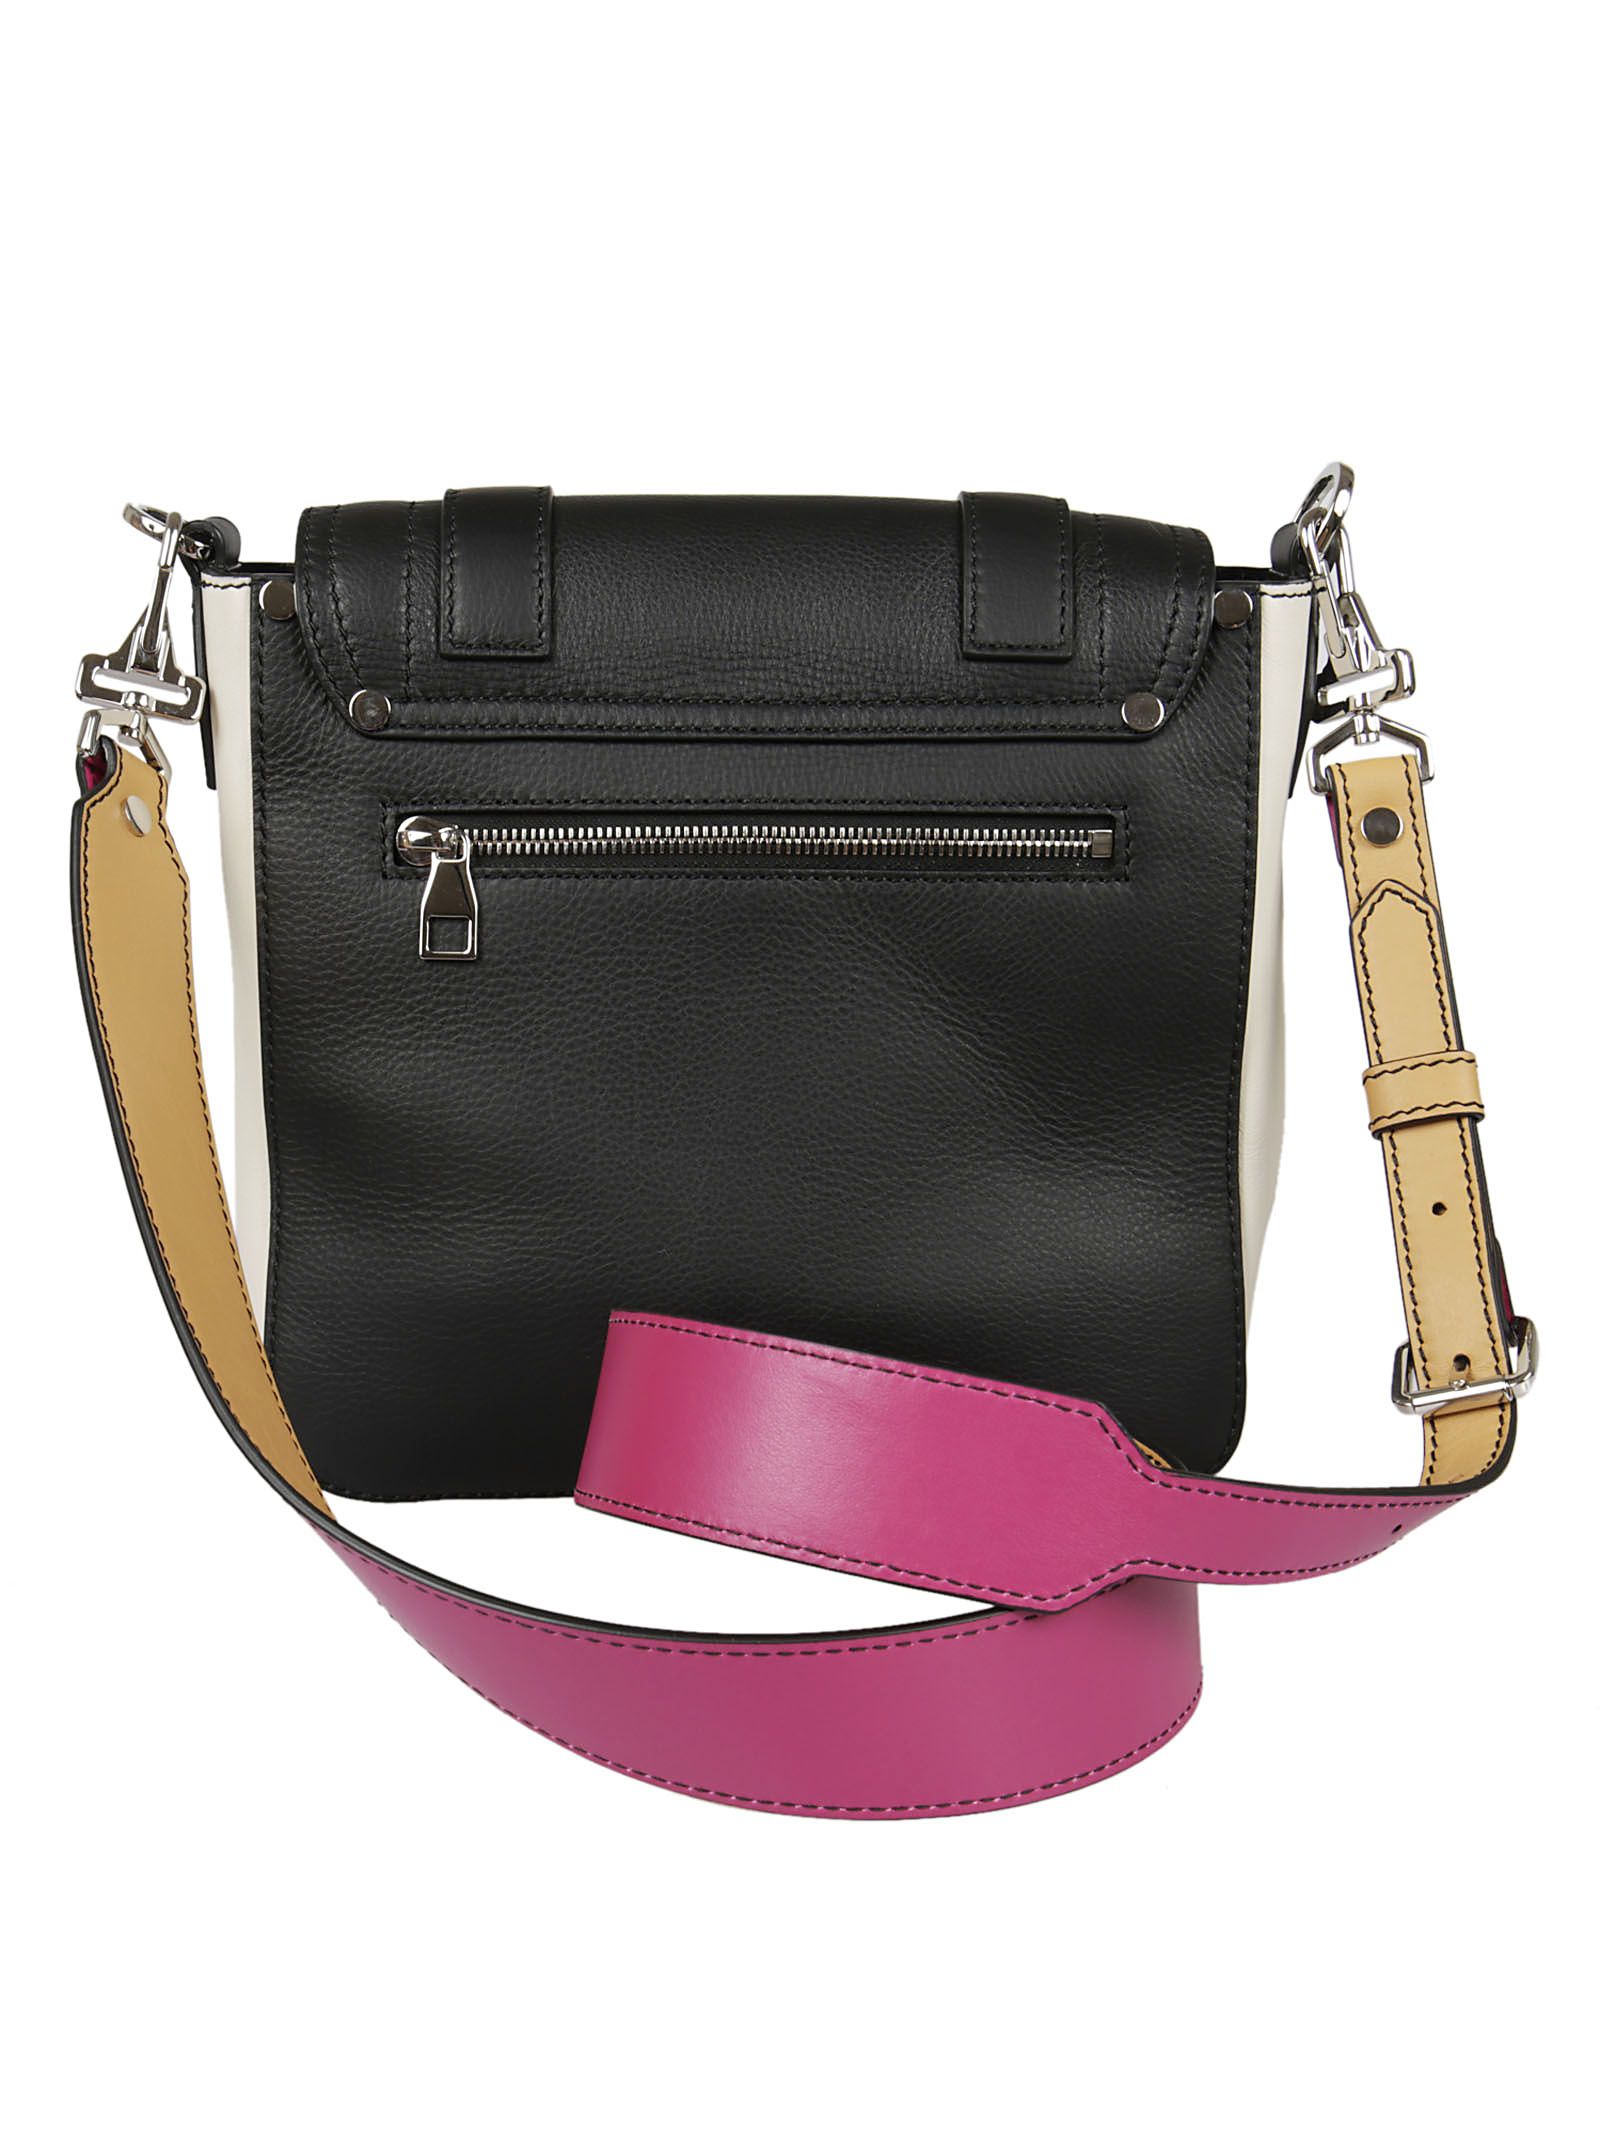 Proenza Schouler PS1 SMALL HOBO